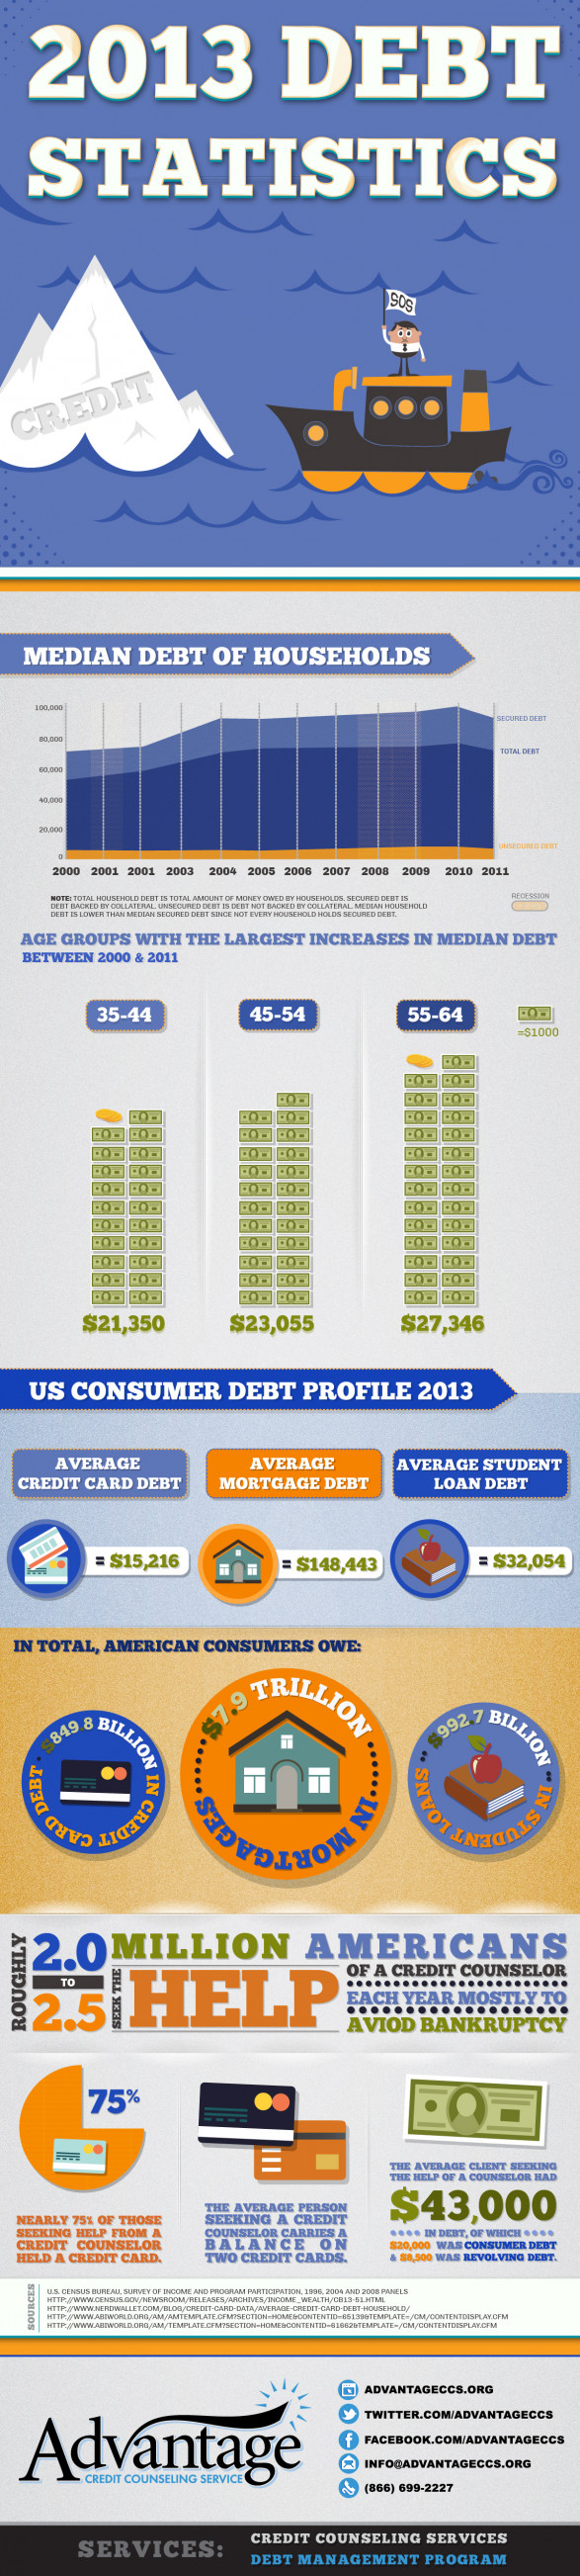 2013 Debt Statistics for US Consumers